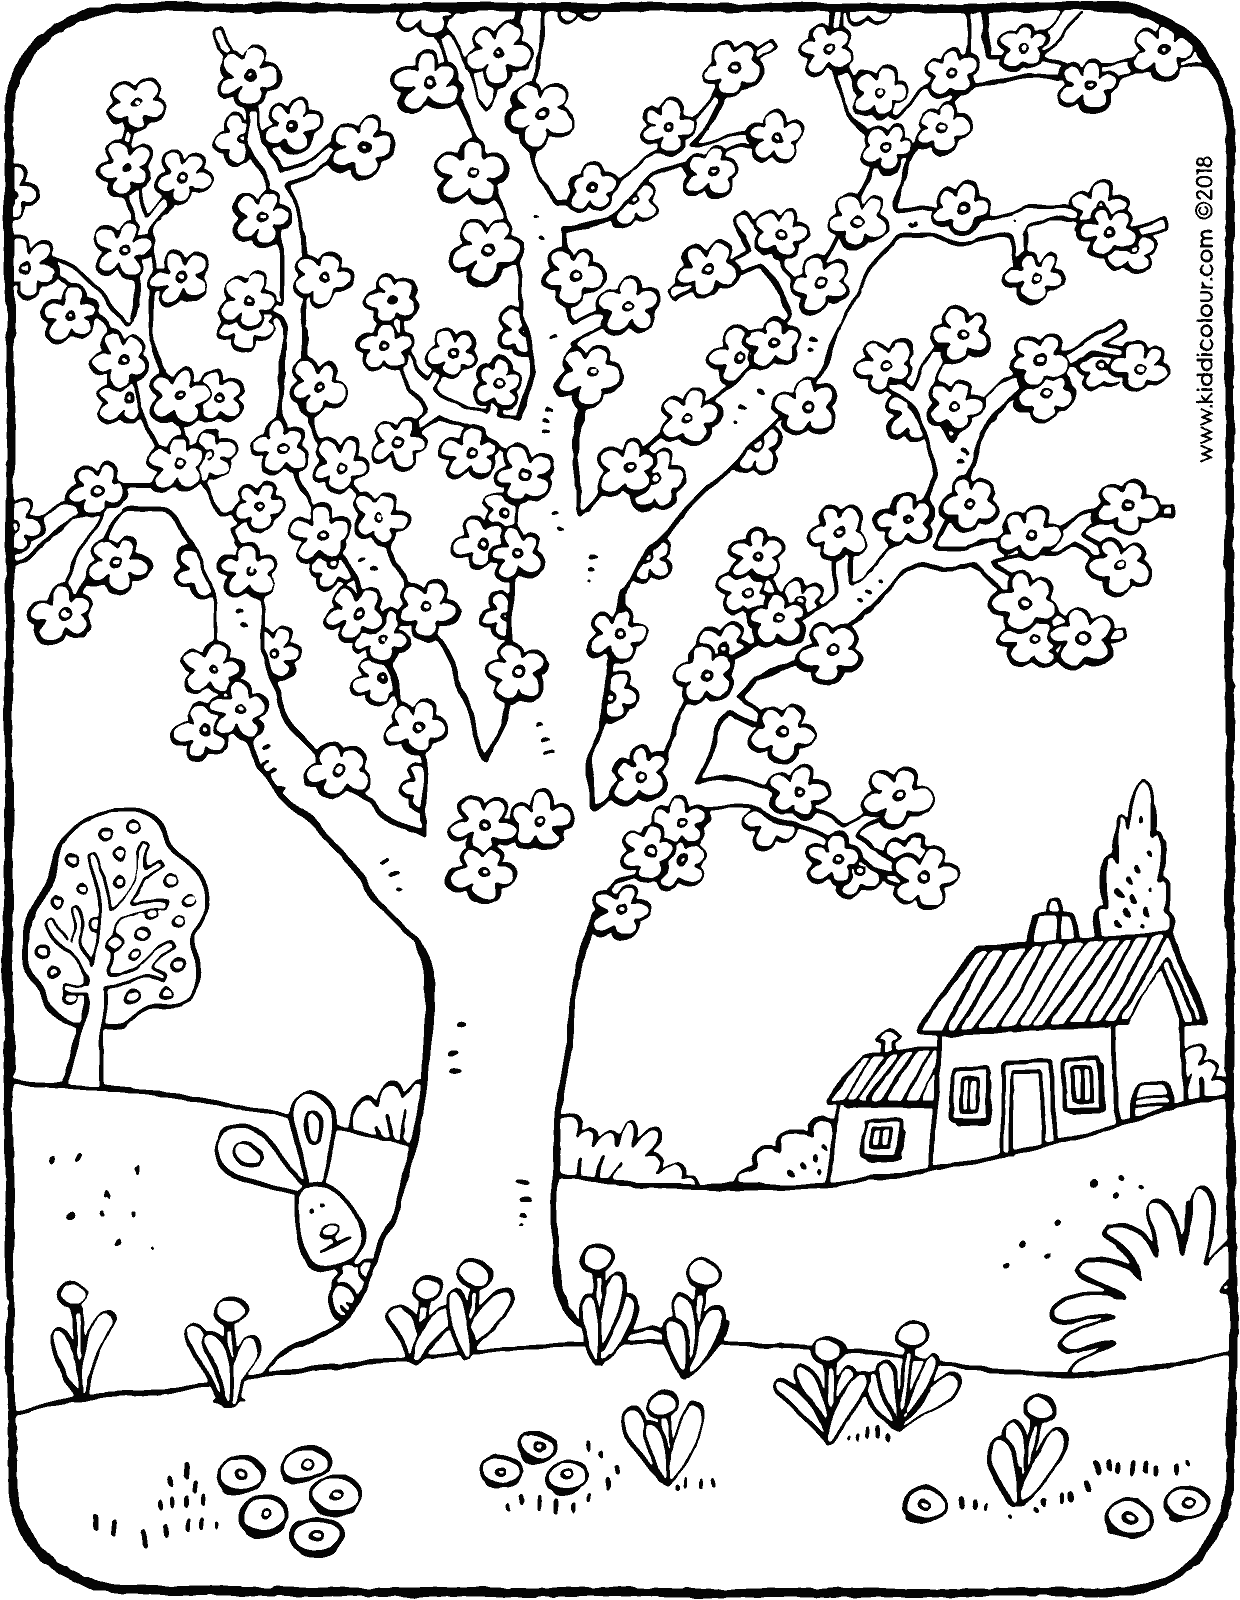 tree full of blossom colouring page drawing picture 01H